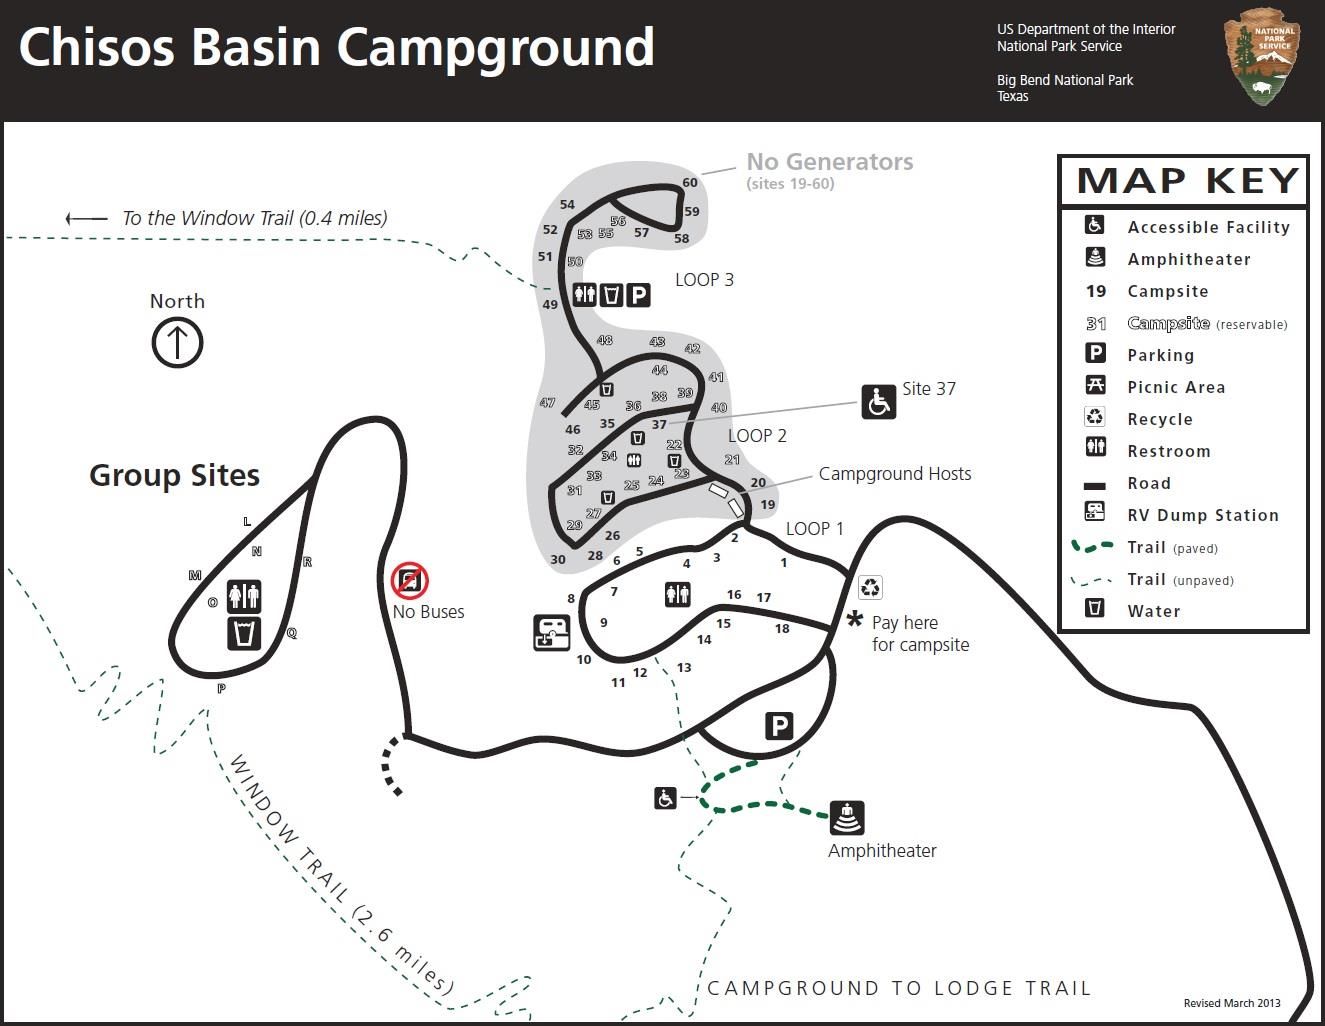 Basin Campground Info